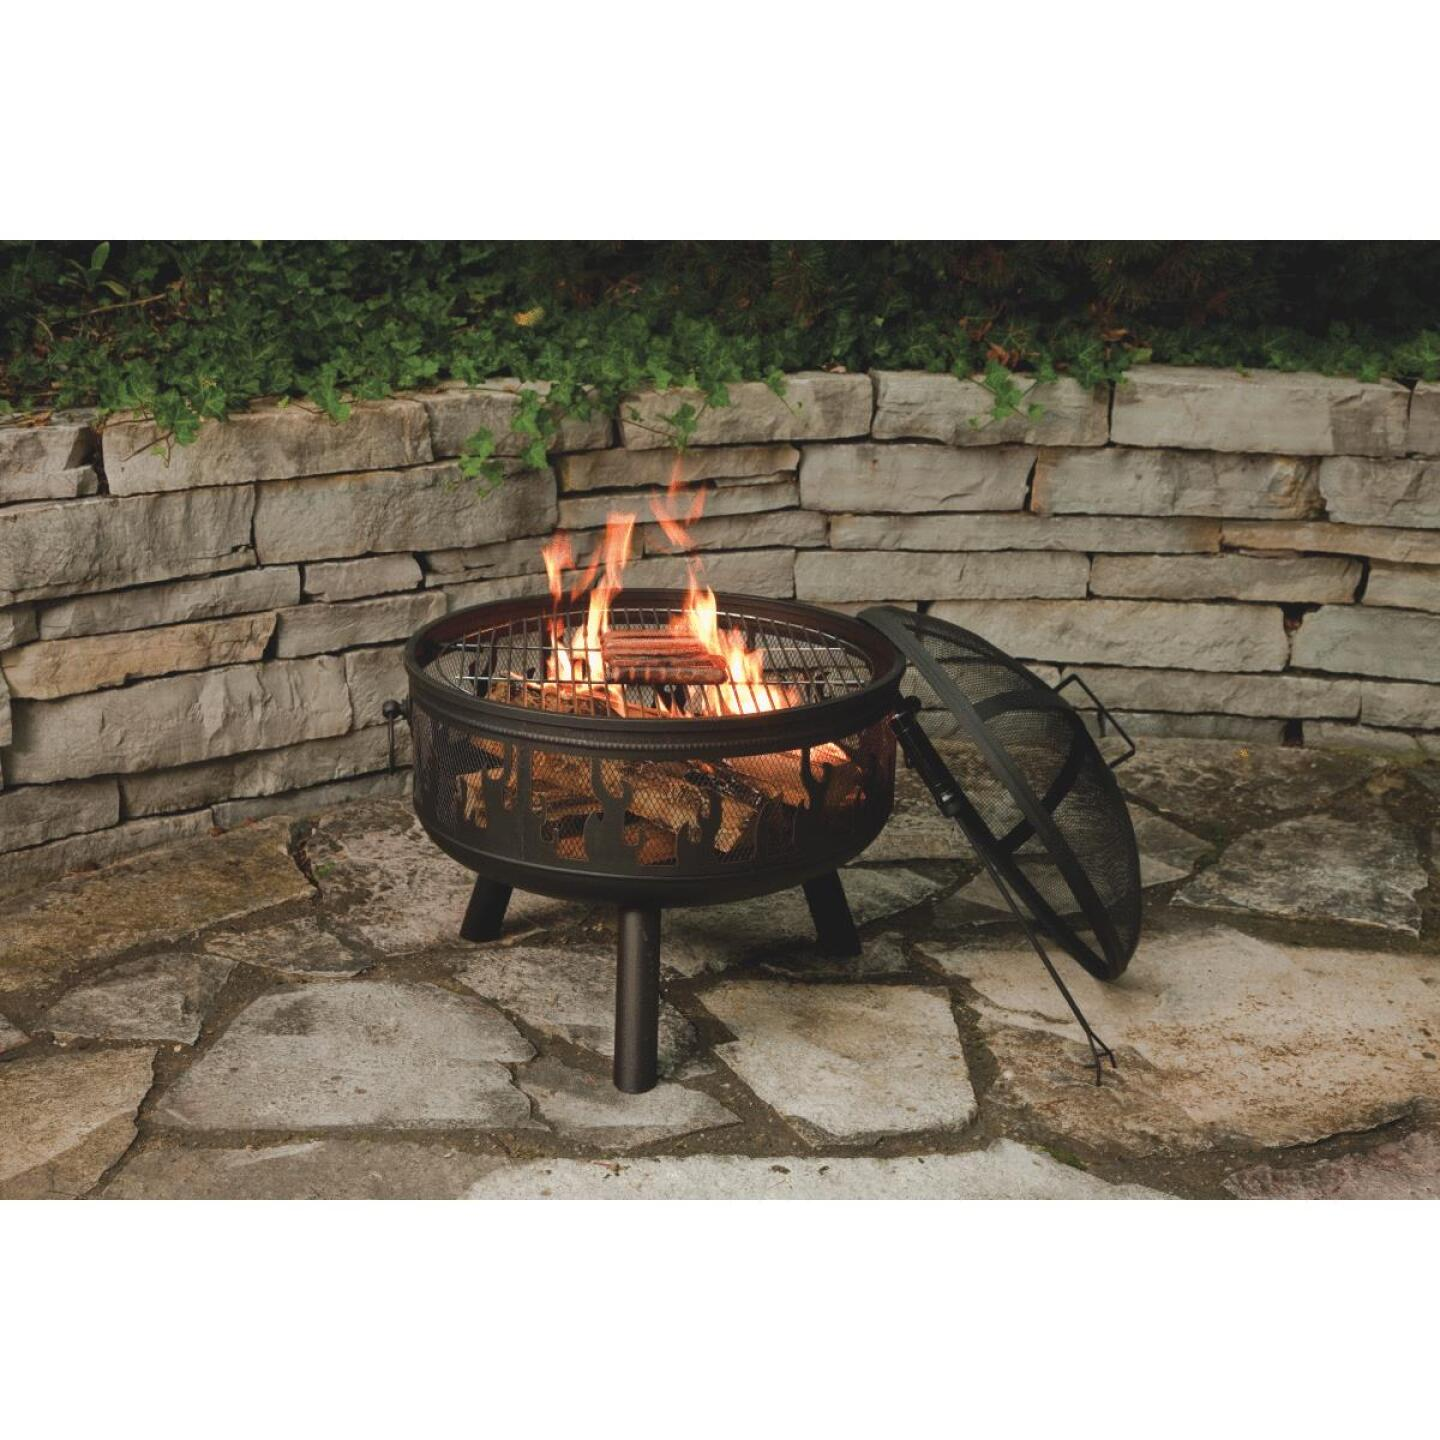 Outdoor Expressions 24 In. Antique Bronze Round Steel Fire Pit Image 4